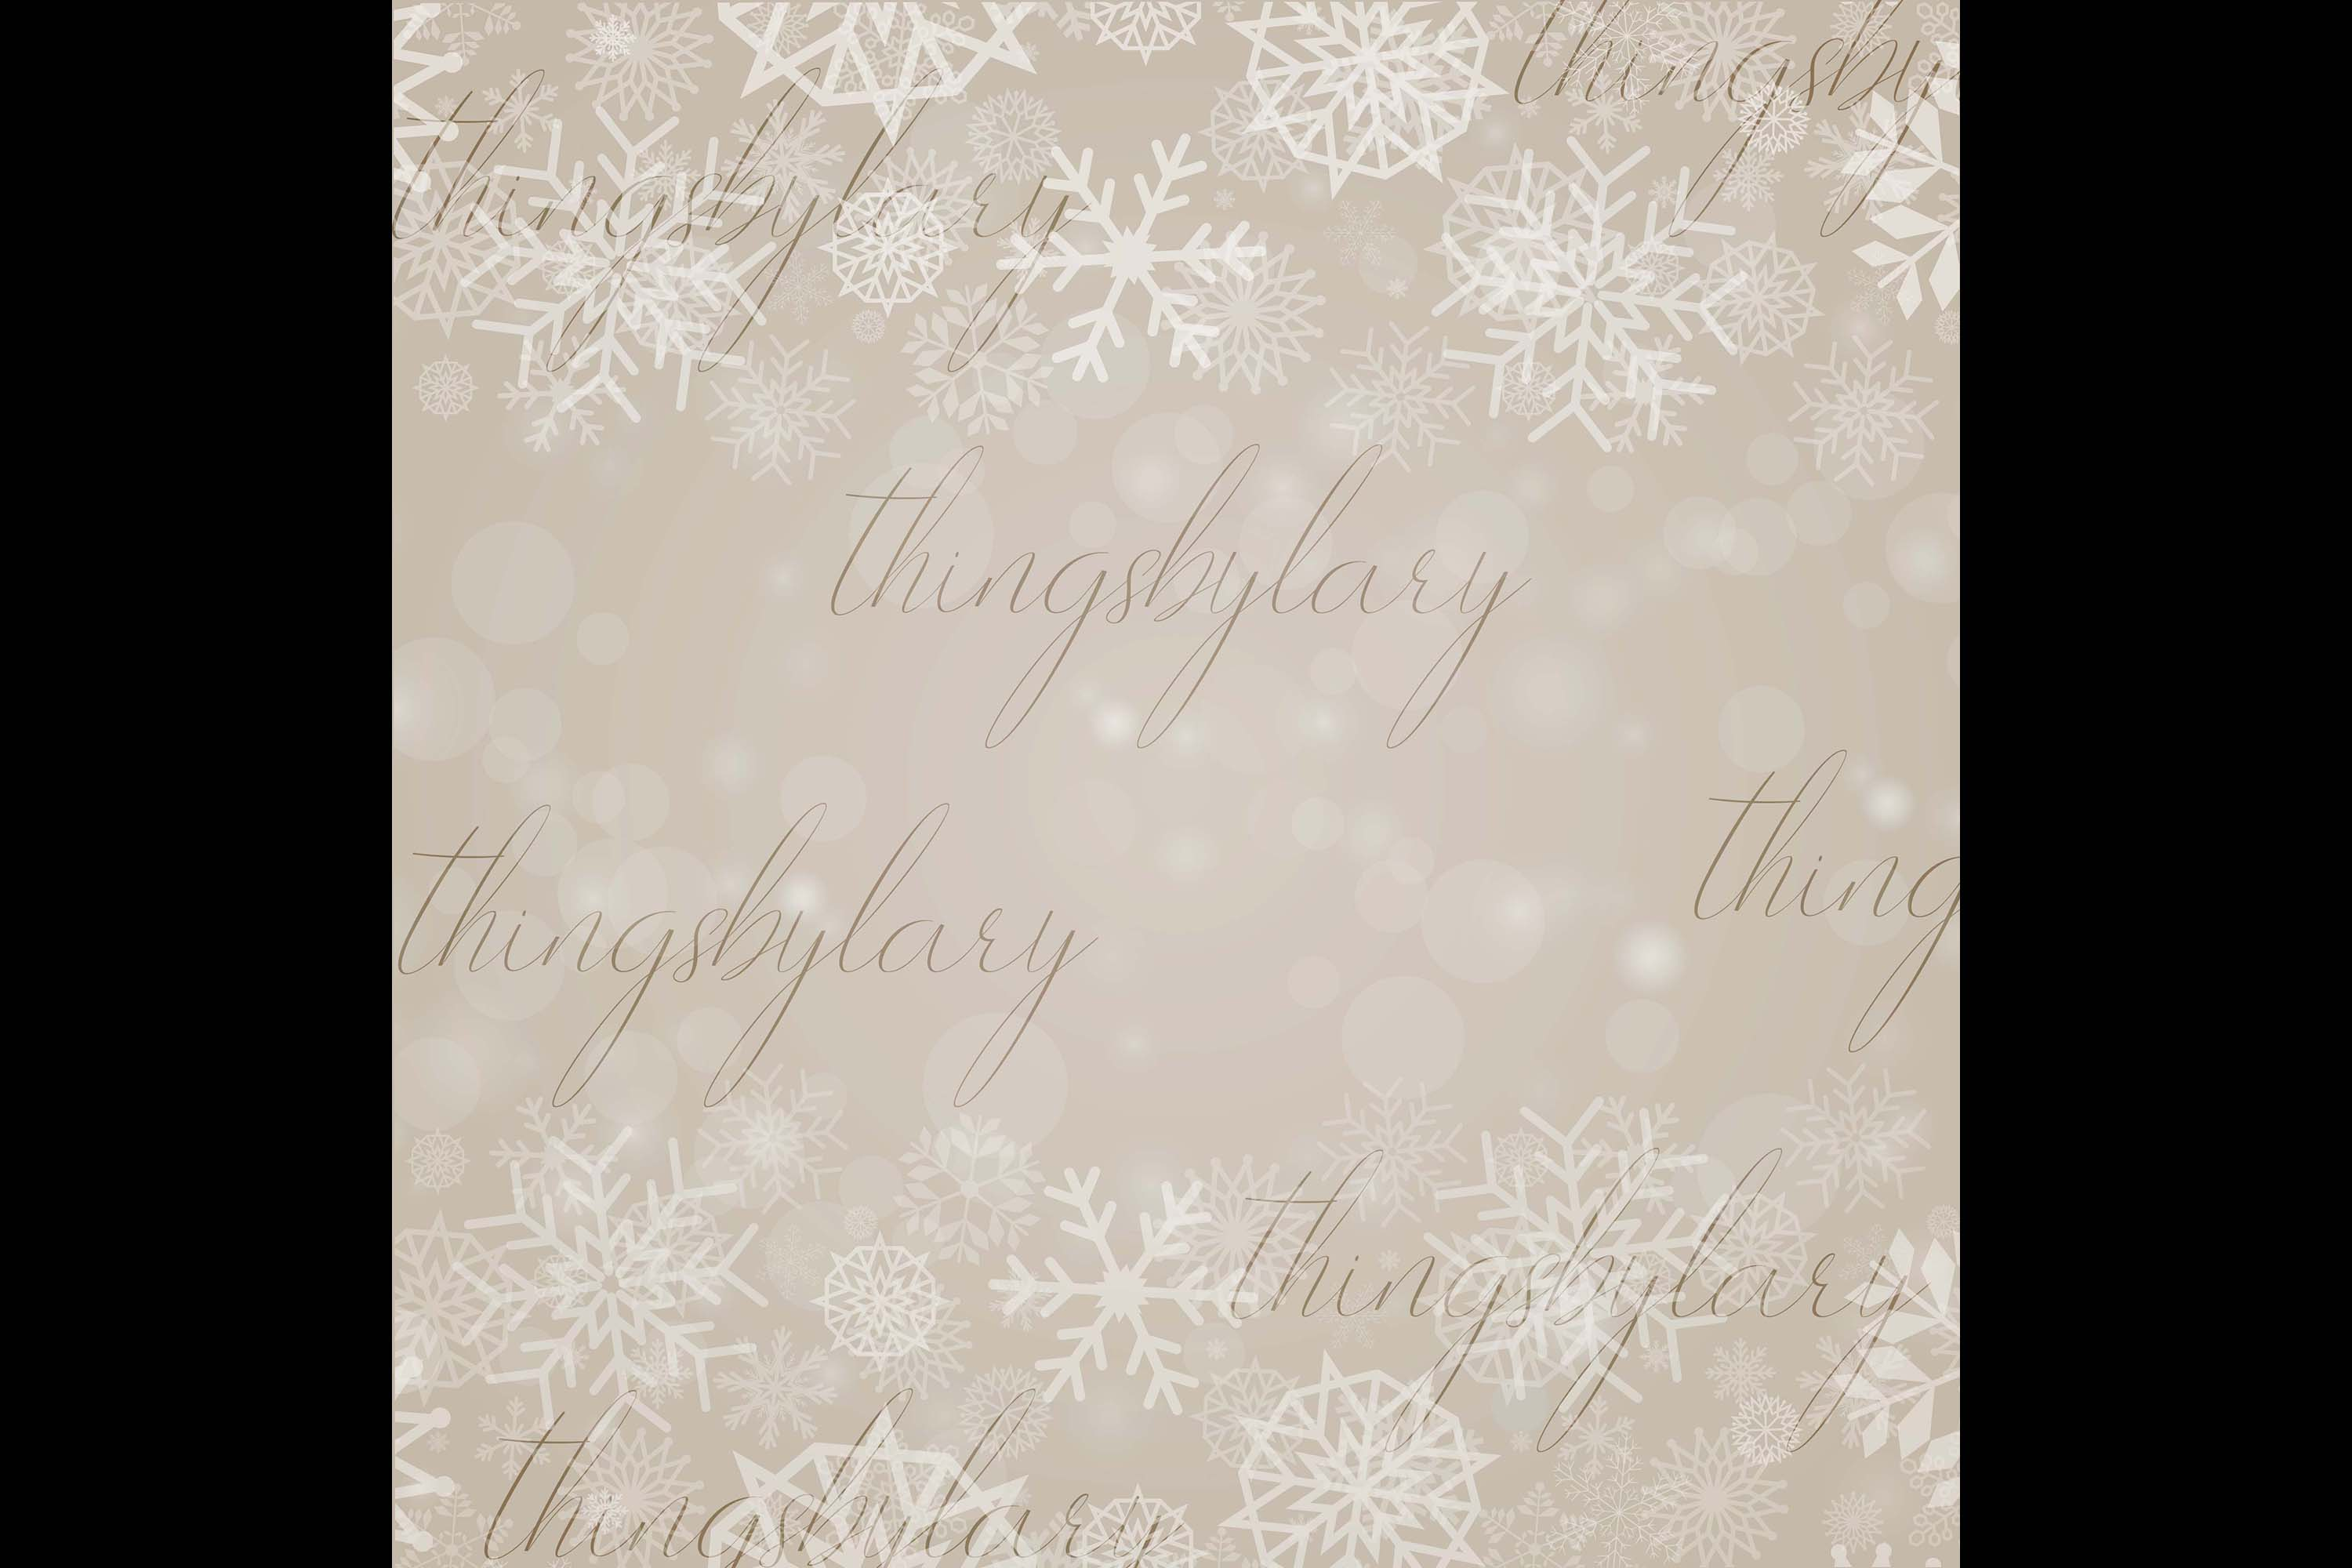 27 Falling Snowflakes Overlay Digital Images PNG Transparent example image 4